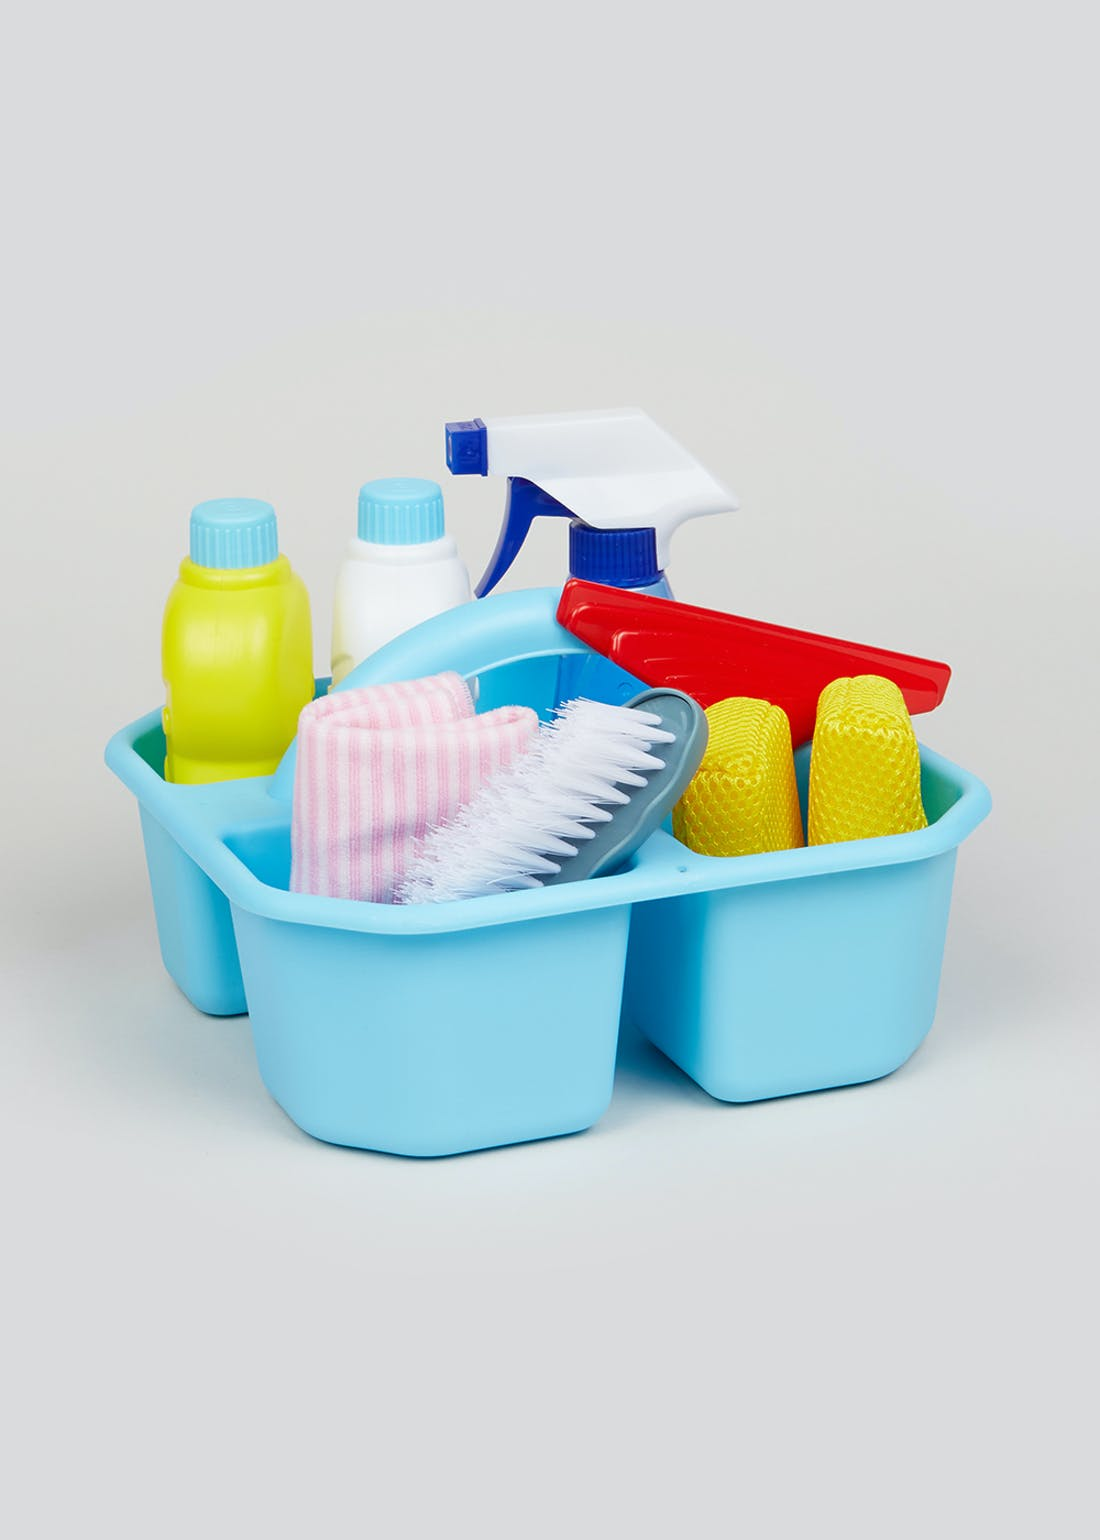 Kids Toy Cleaning Caddy (22cm x 13cm)